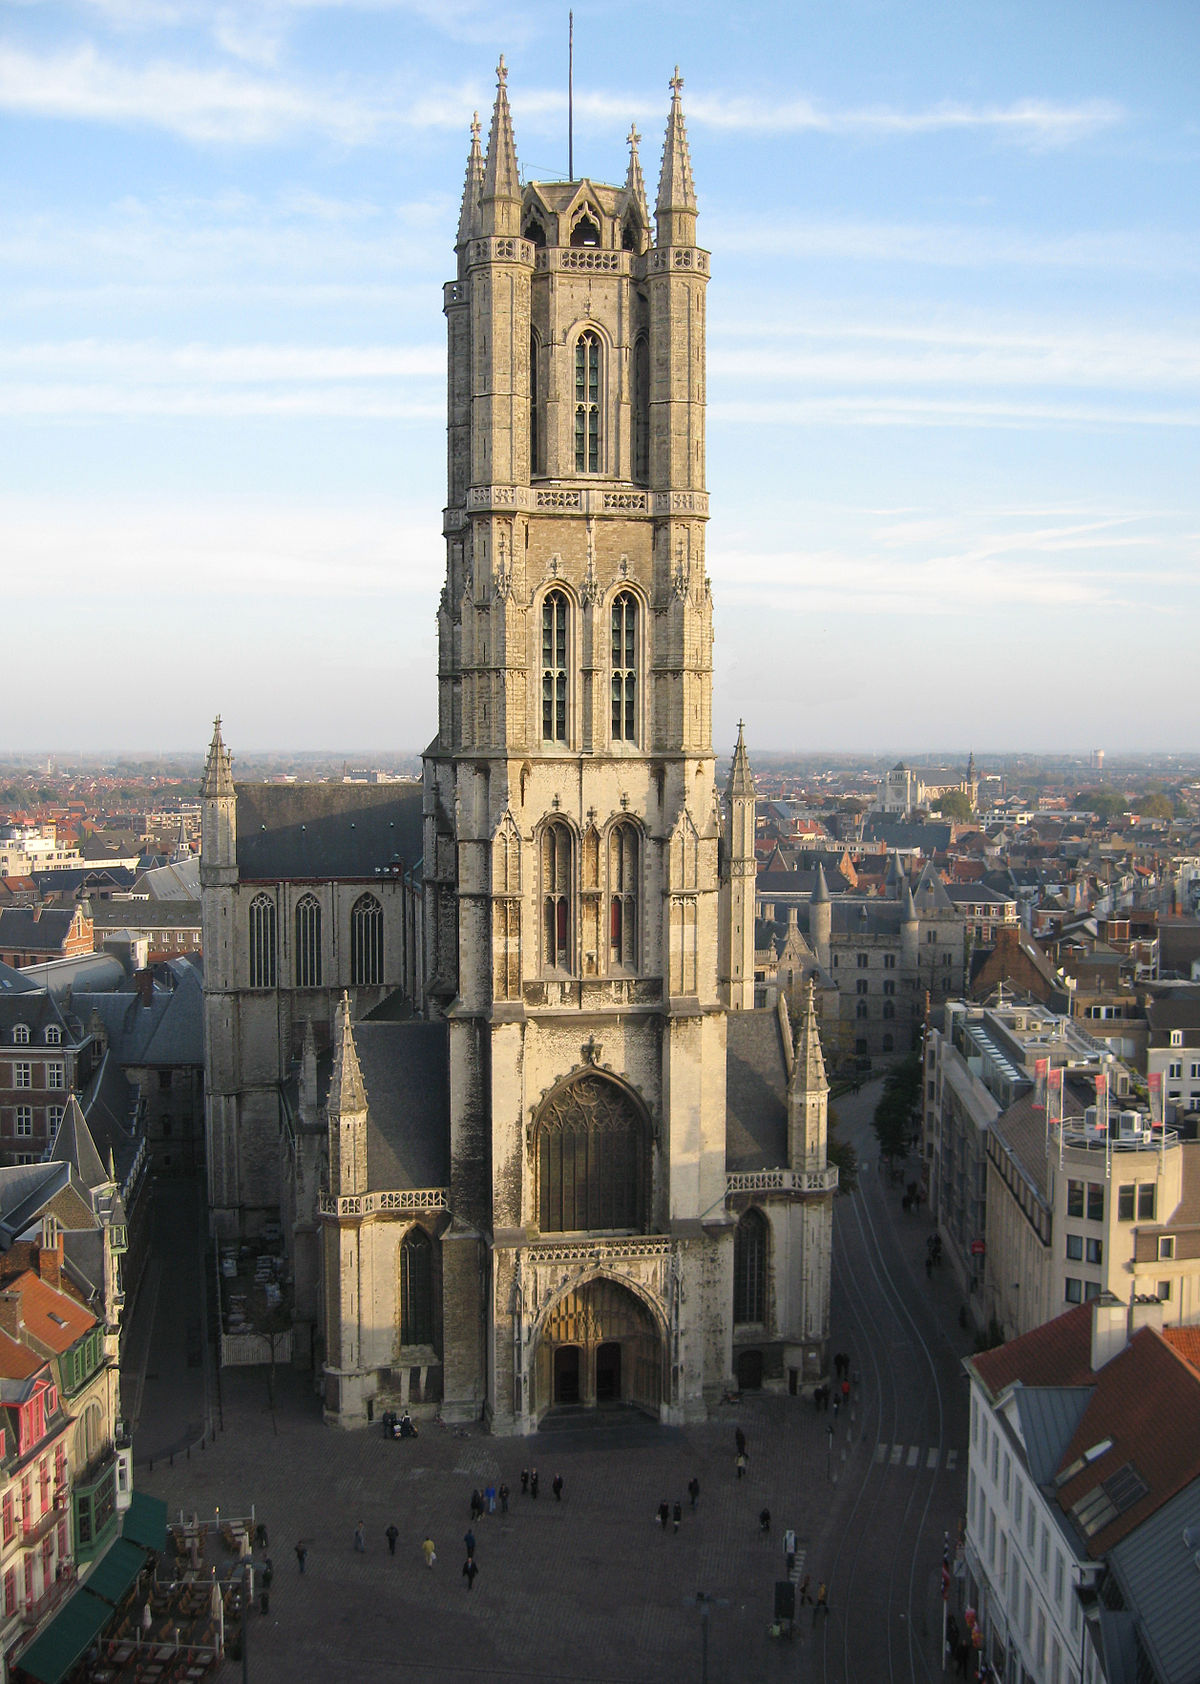 1200px-Sint-Baafskathedraal_(St._Bavo's_Cathedral)_Ghent_Belgium_October